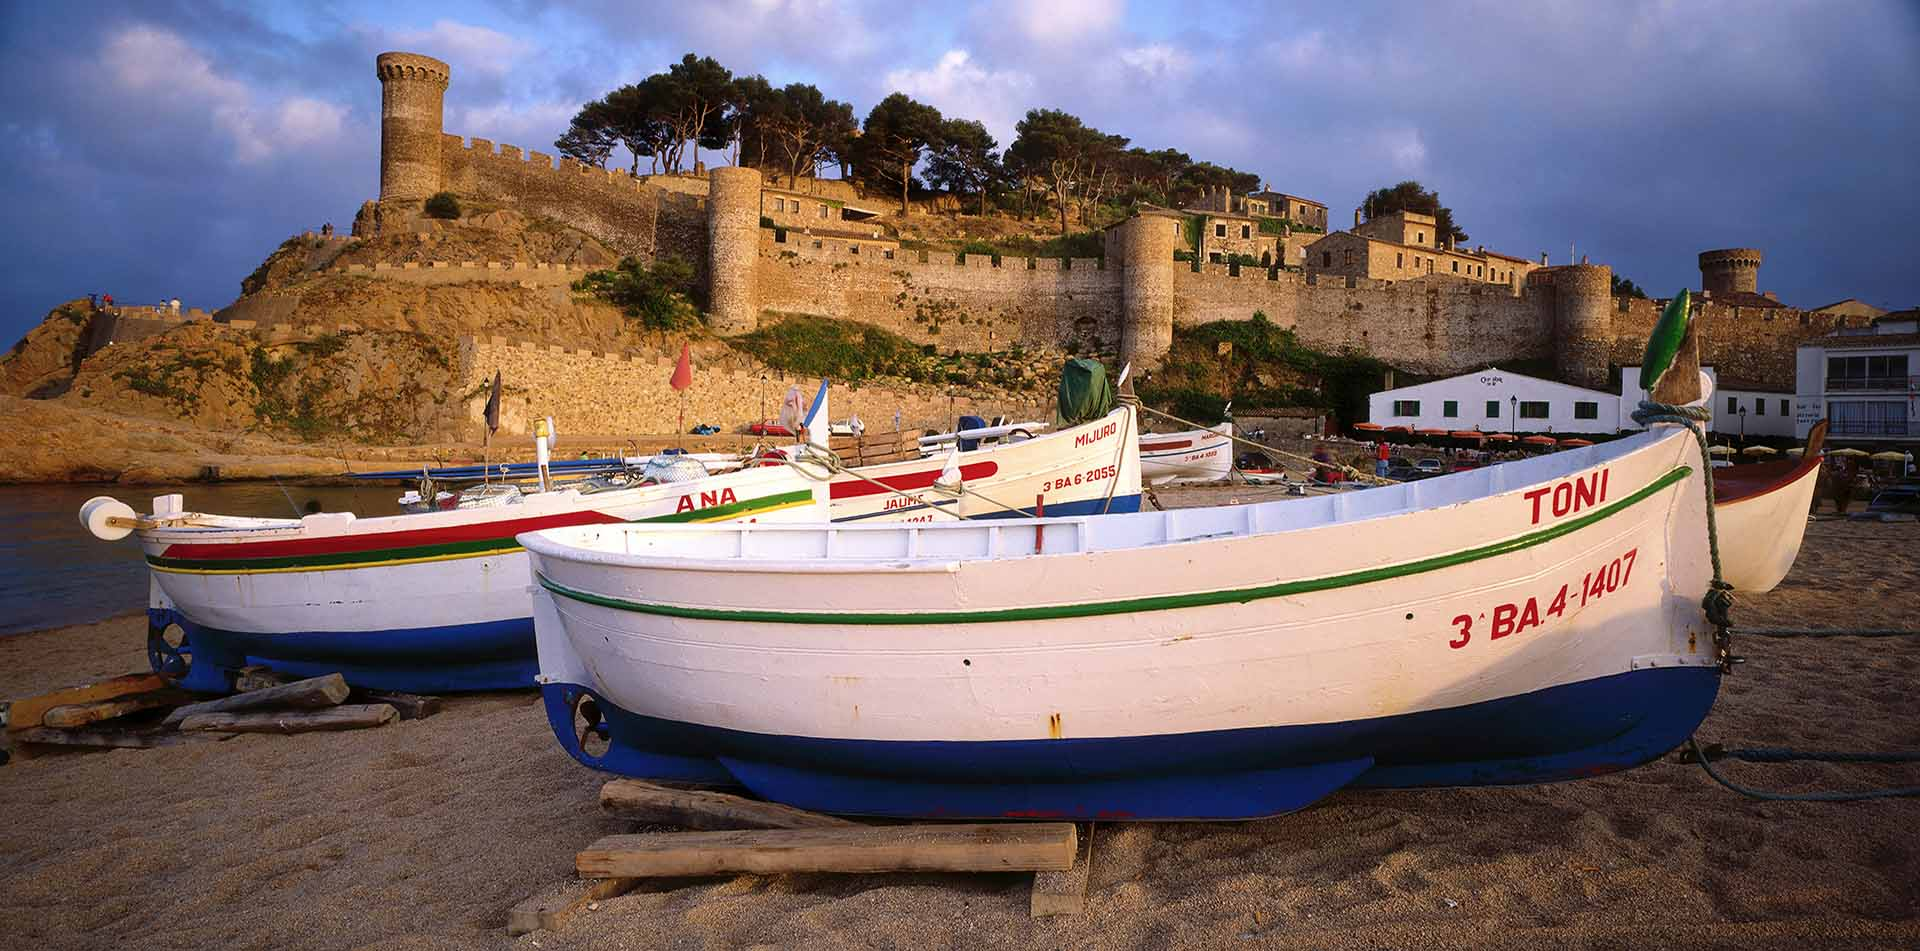 Walled Town with Boats in Foreground, Costa Brava, Spain